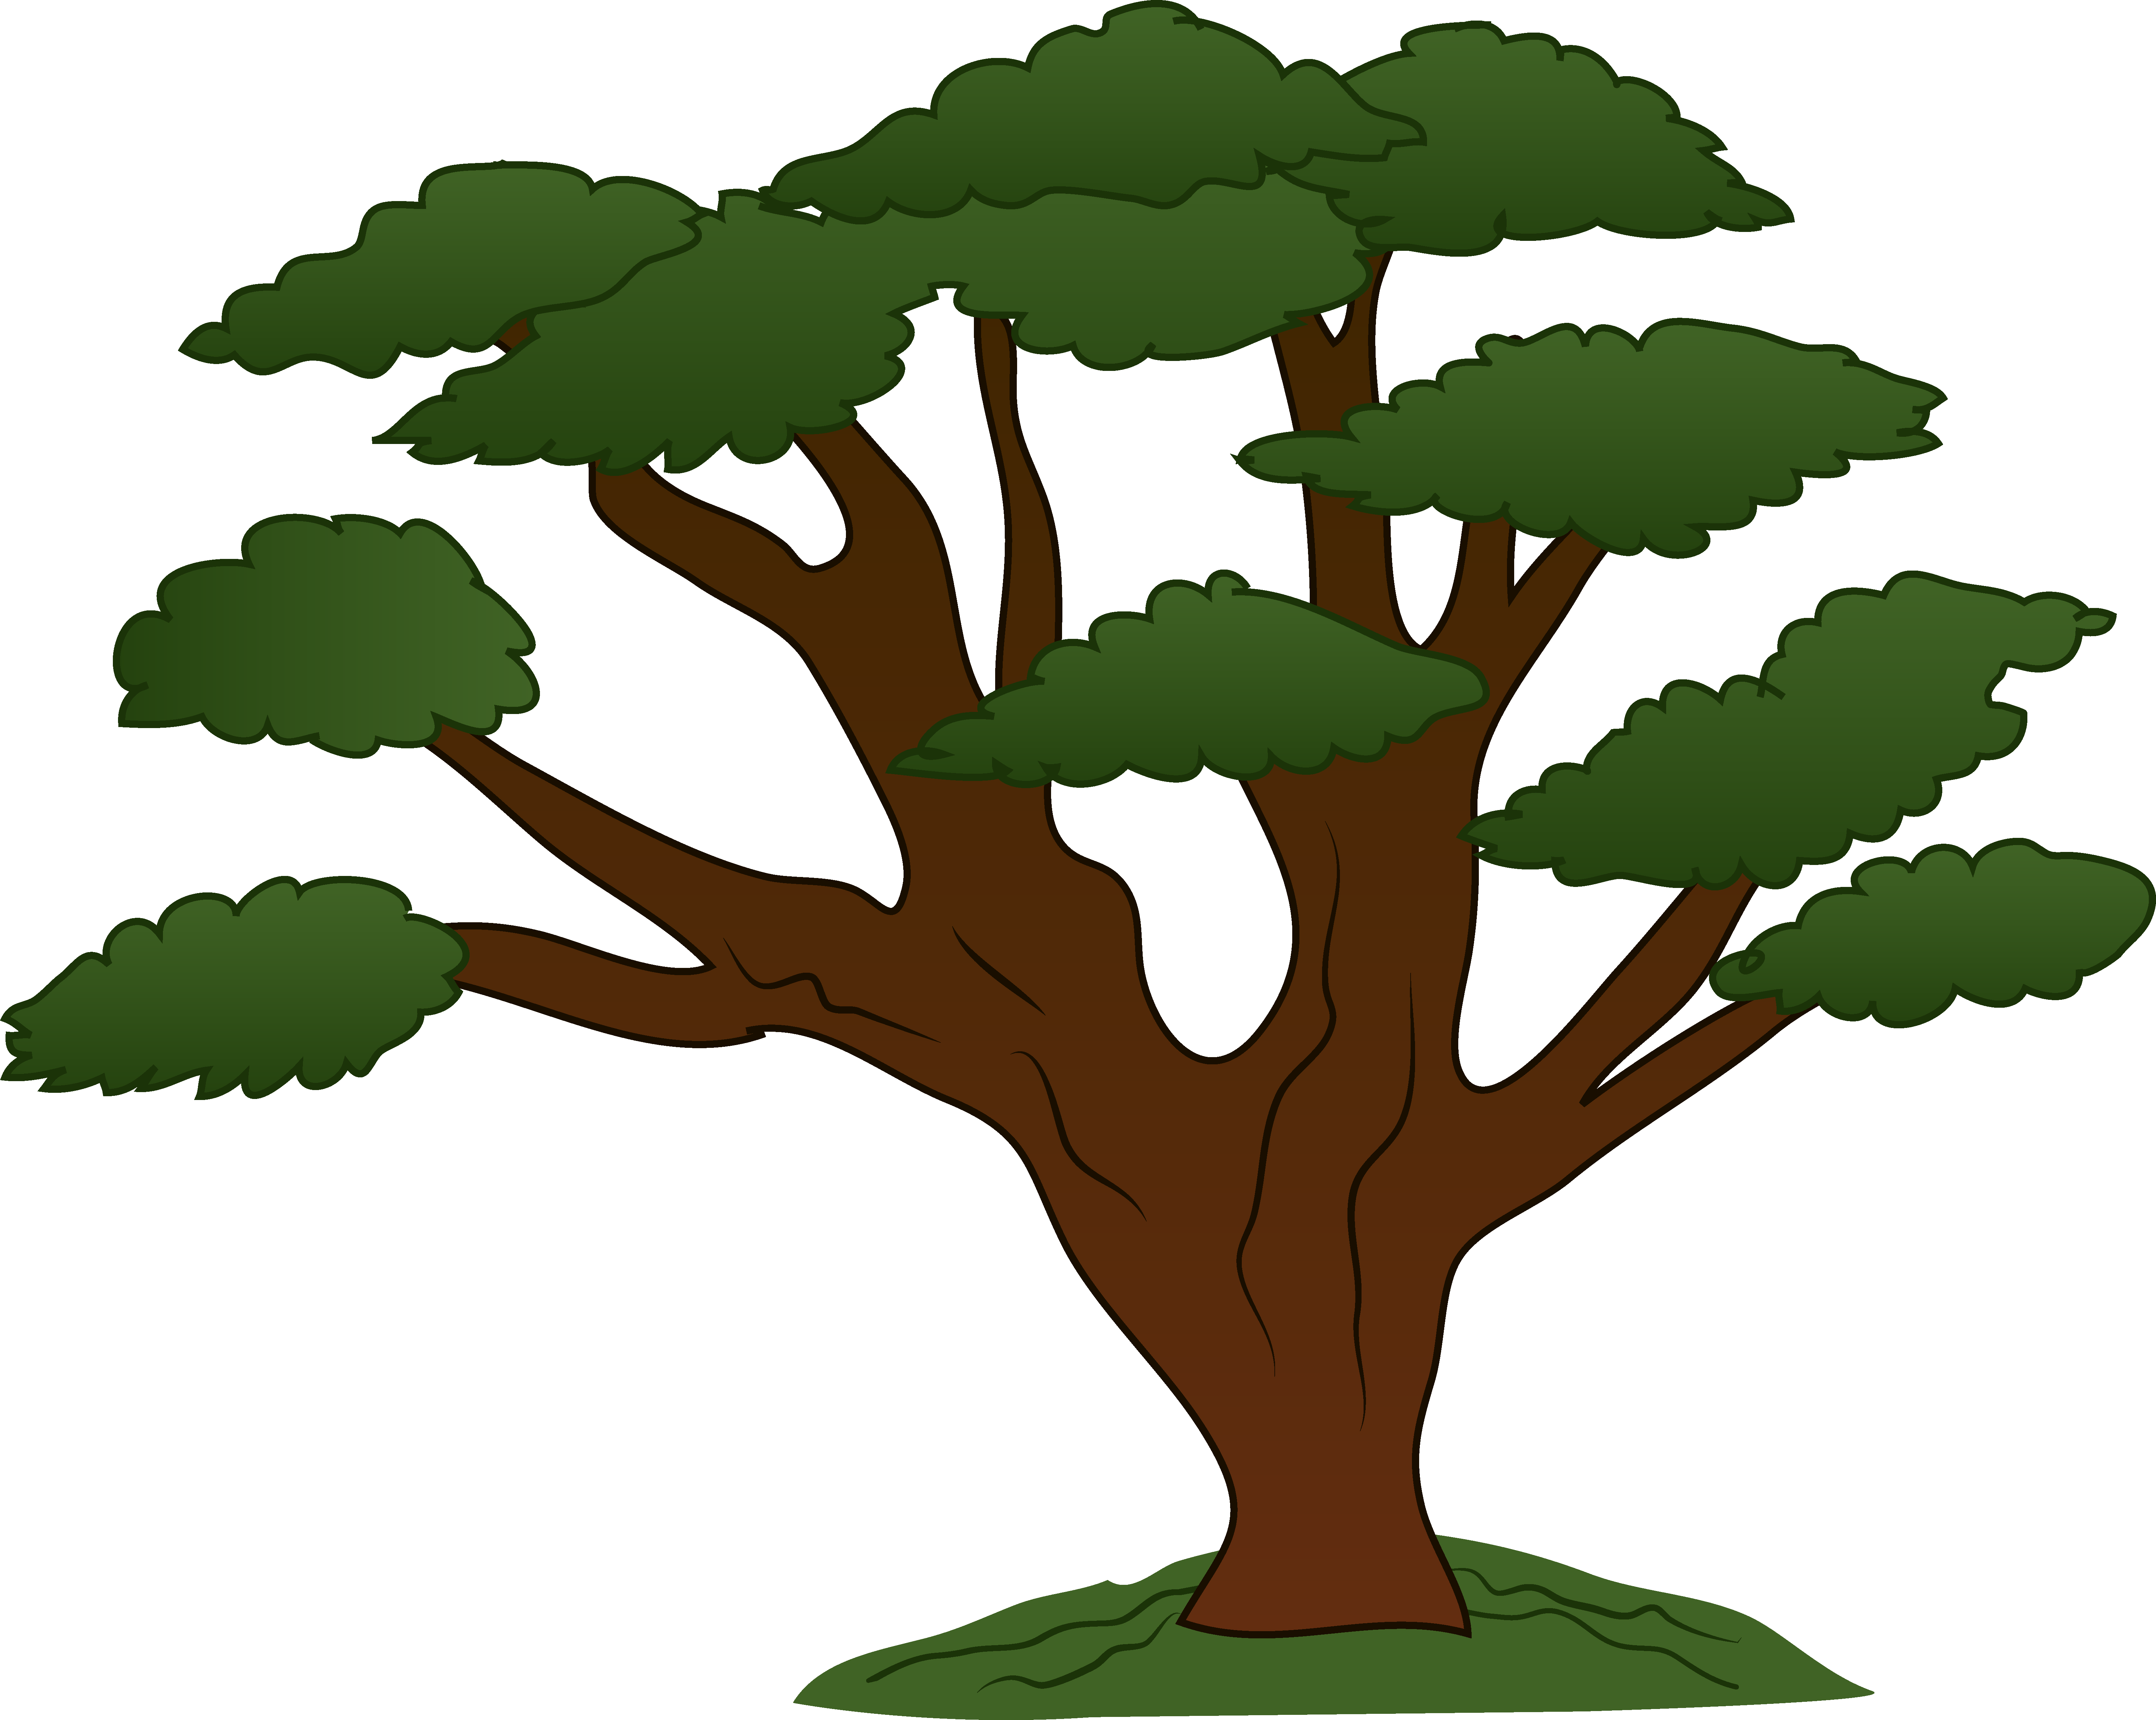 Tree Clipart-Clipartlook.com-6285-Tree Clipart-Clipartlook.com-6285-9